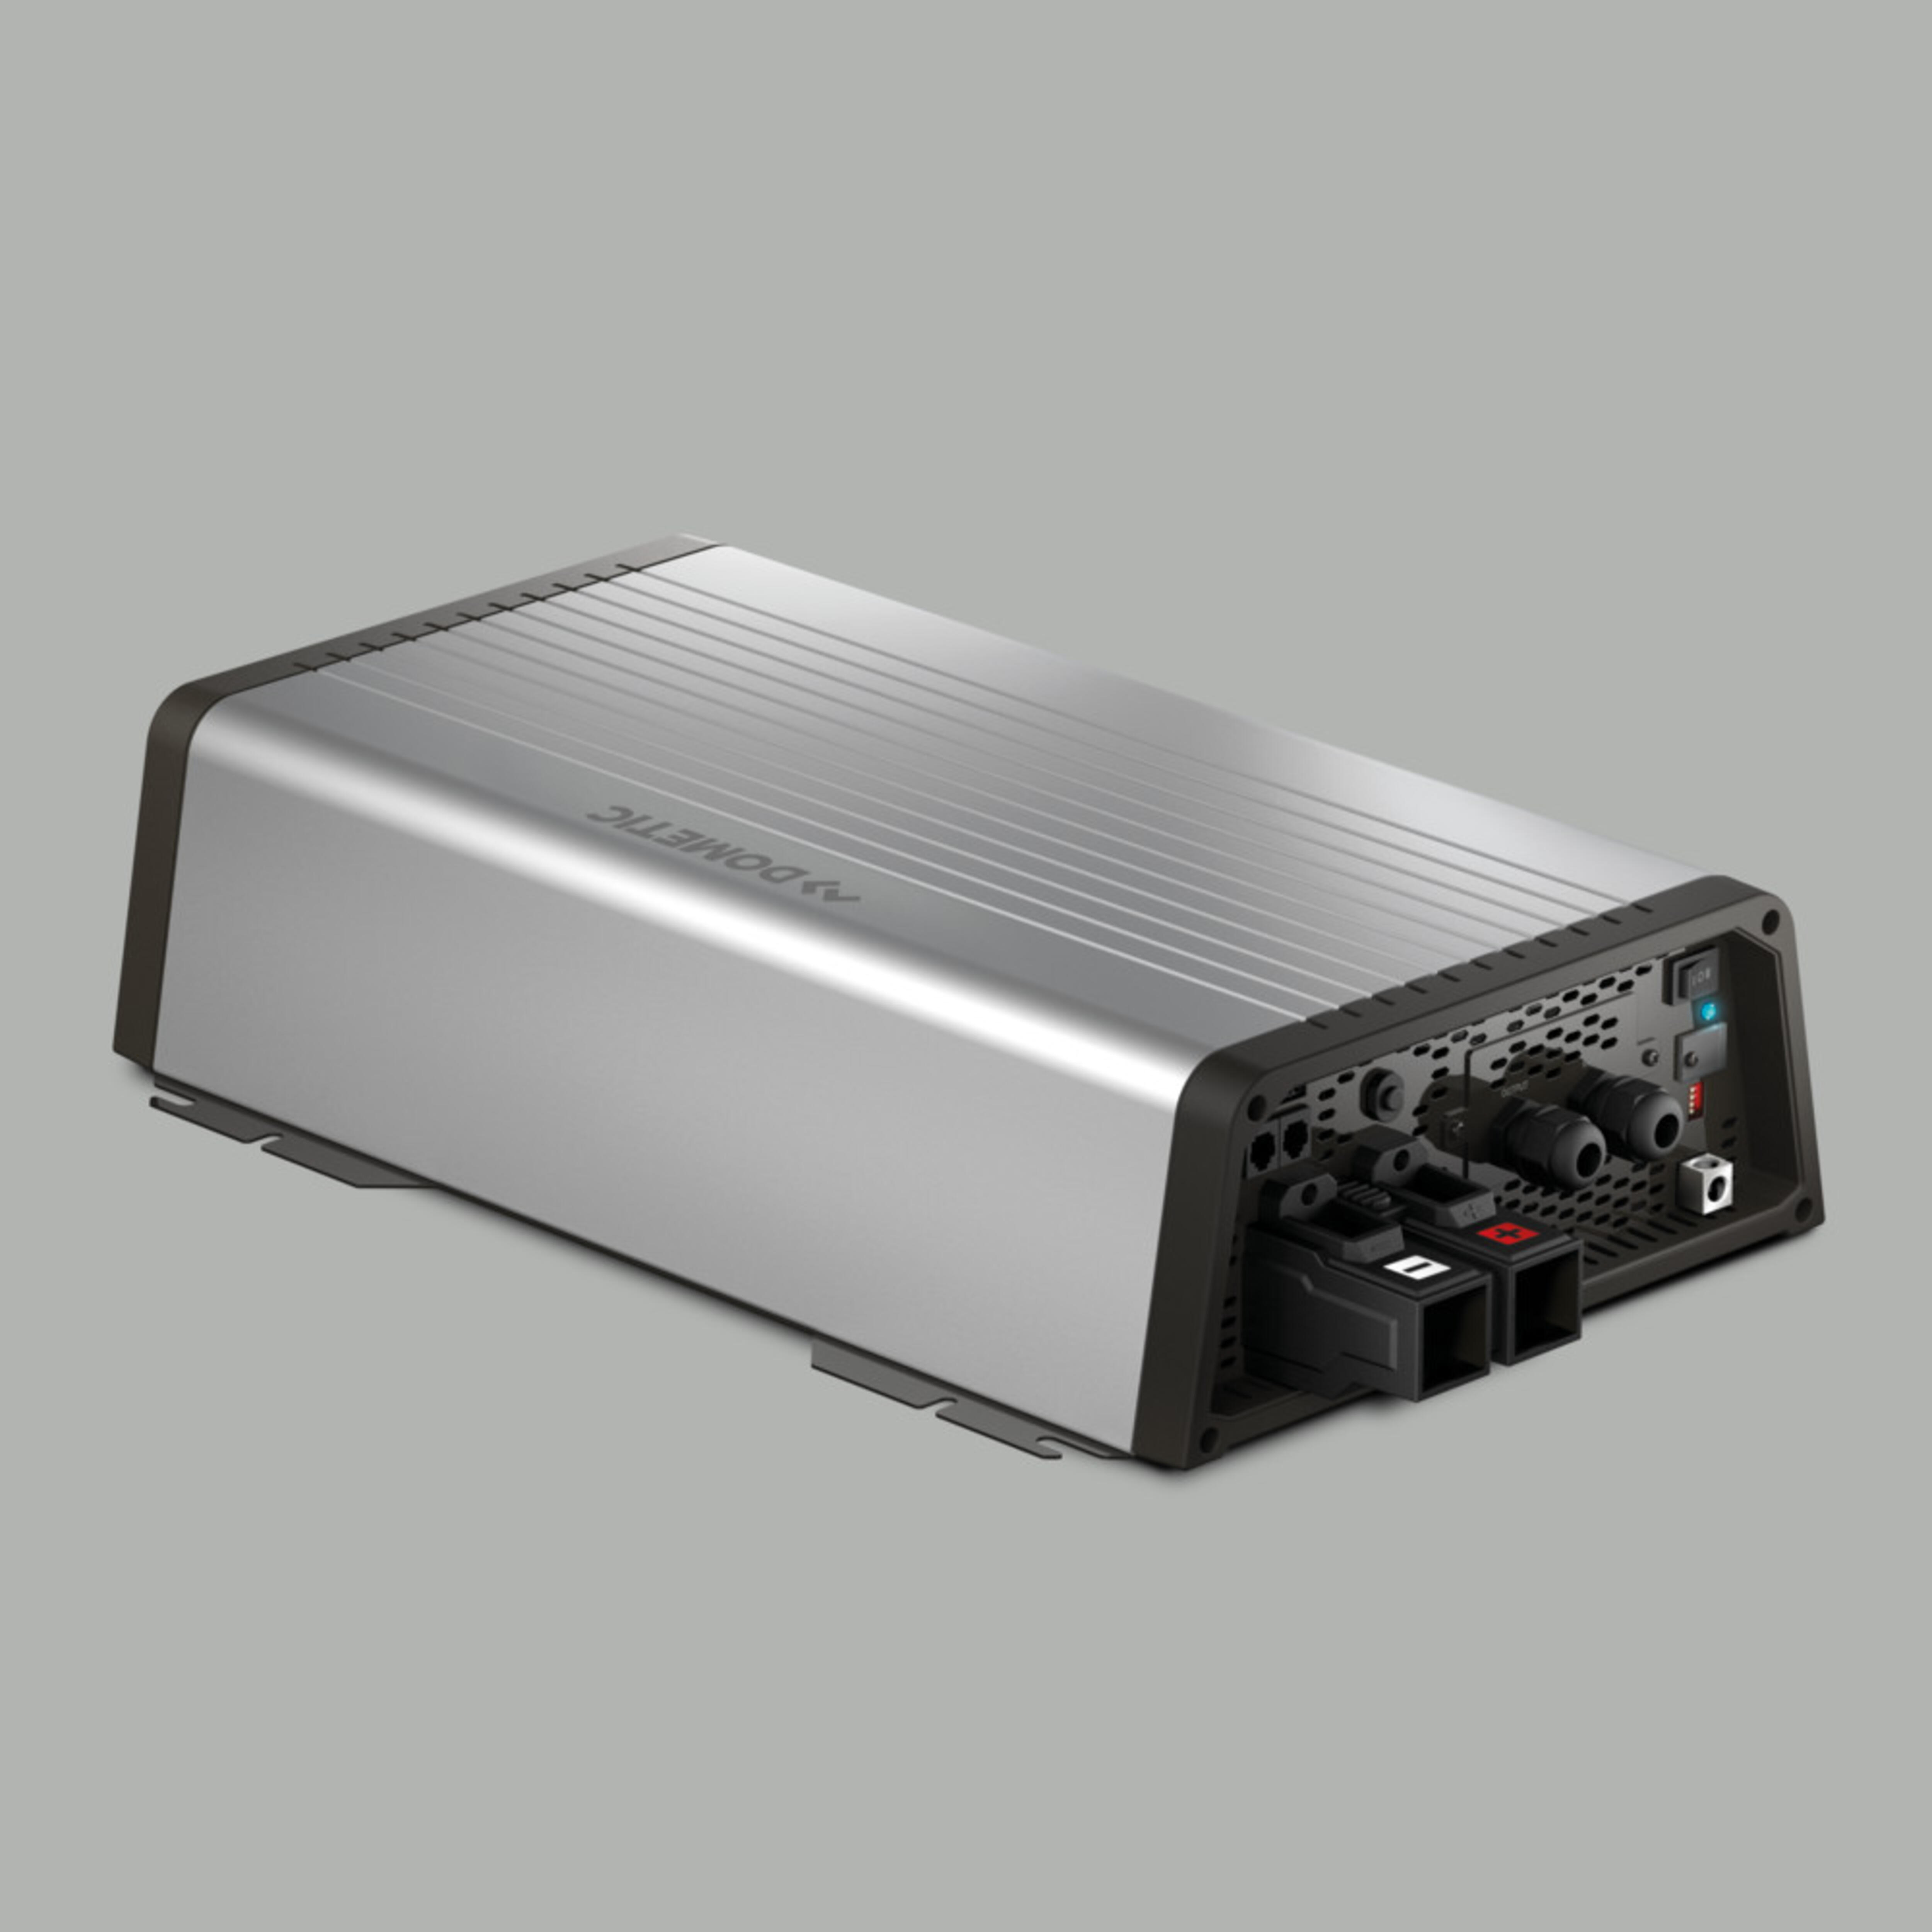 Dometic SinePower DSP 3524T